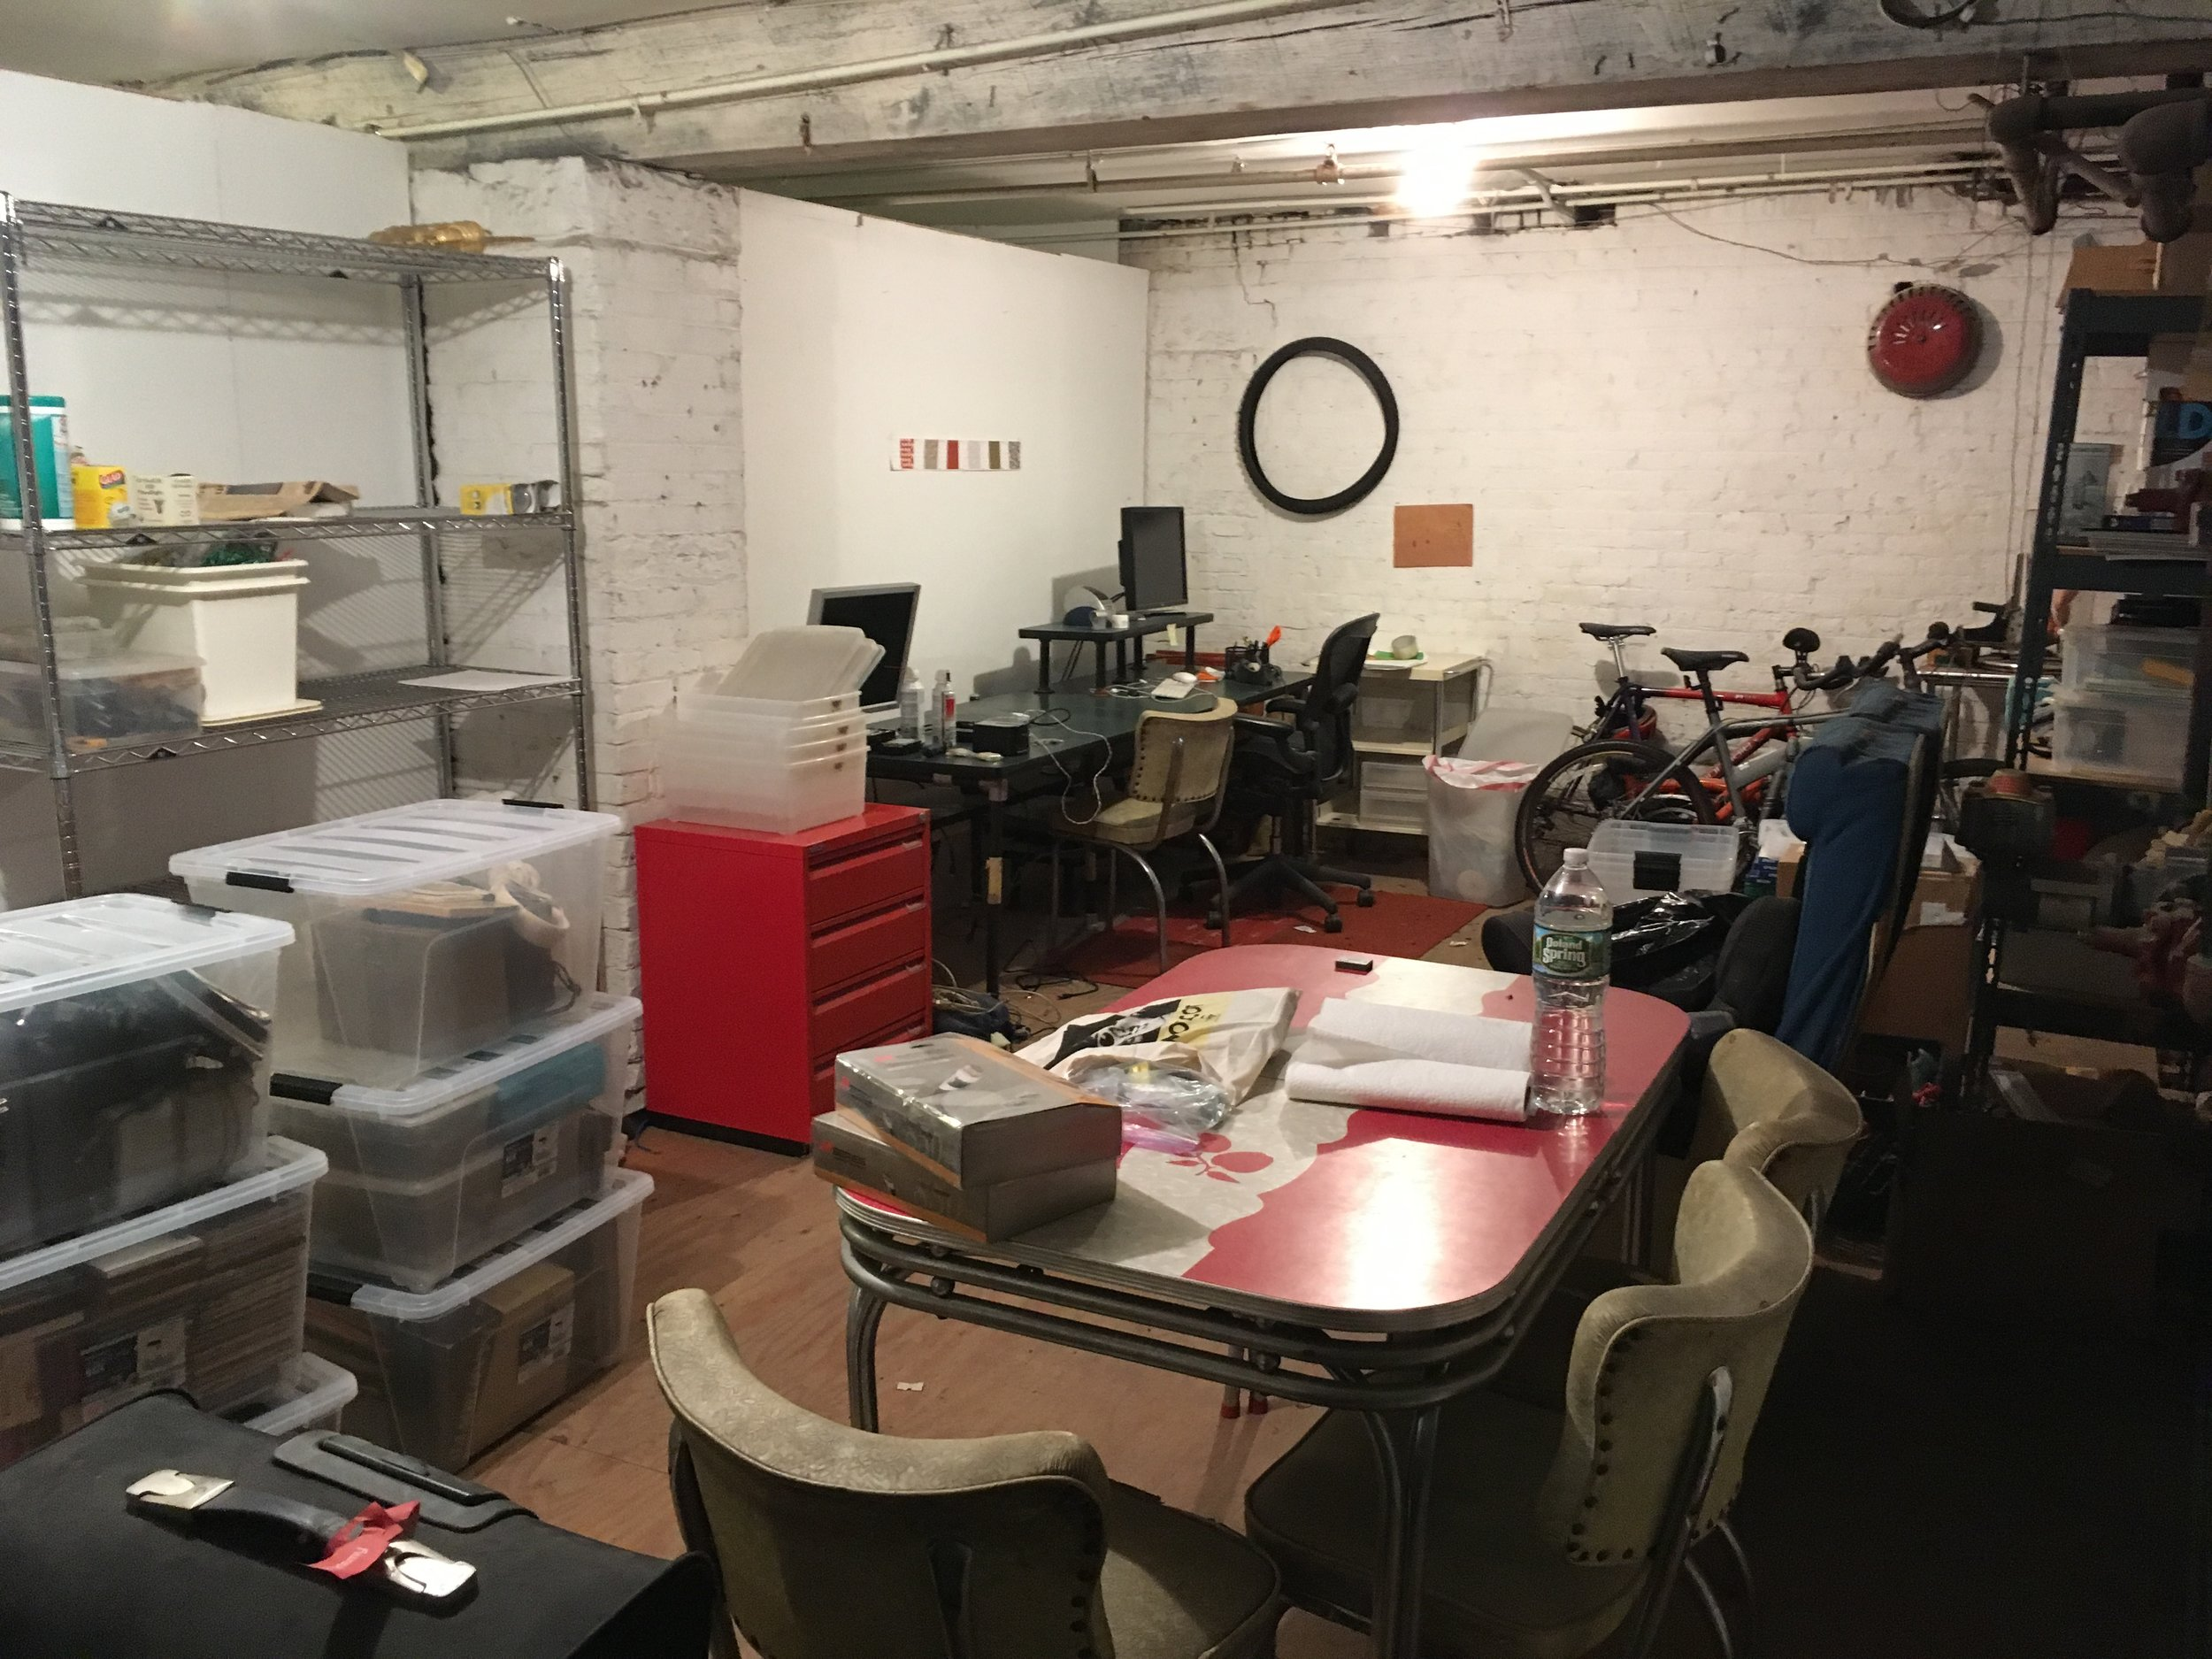 Studio #3: Our current studio mate is in the process of moving, therefore space is occupied and somewhat cluttered…